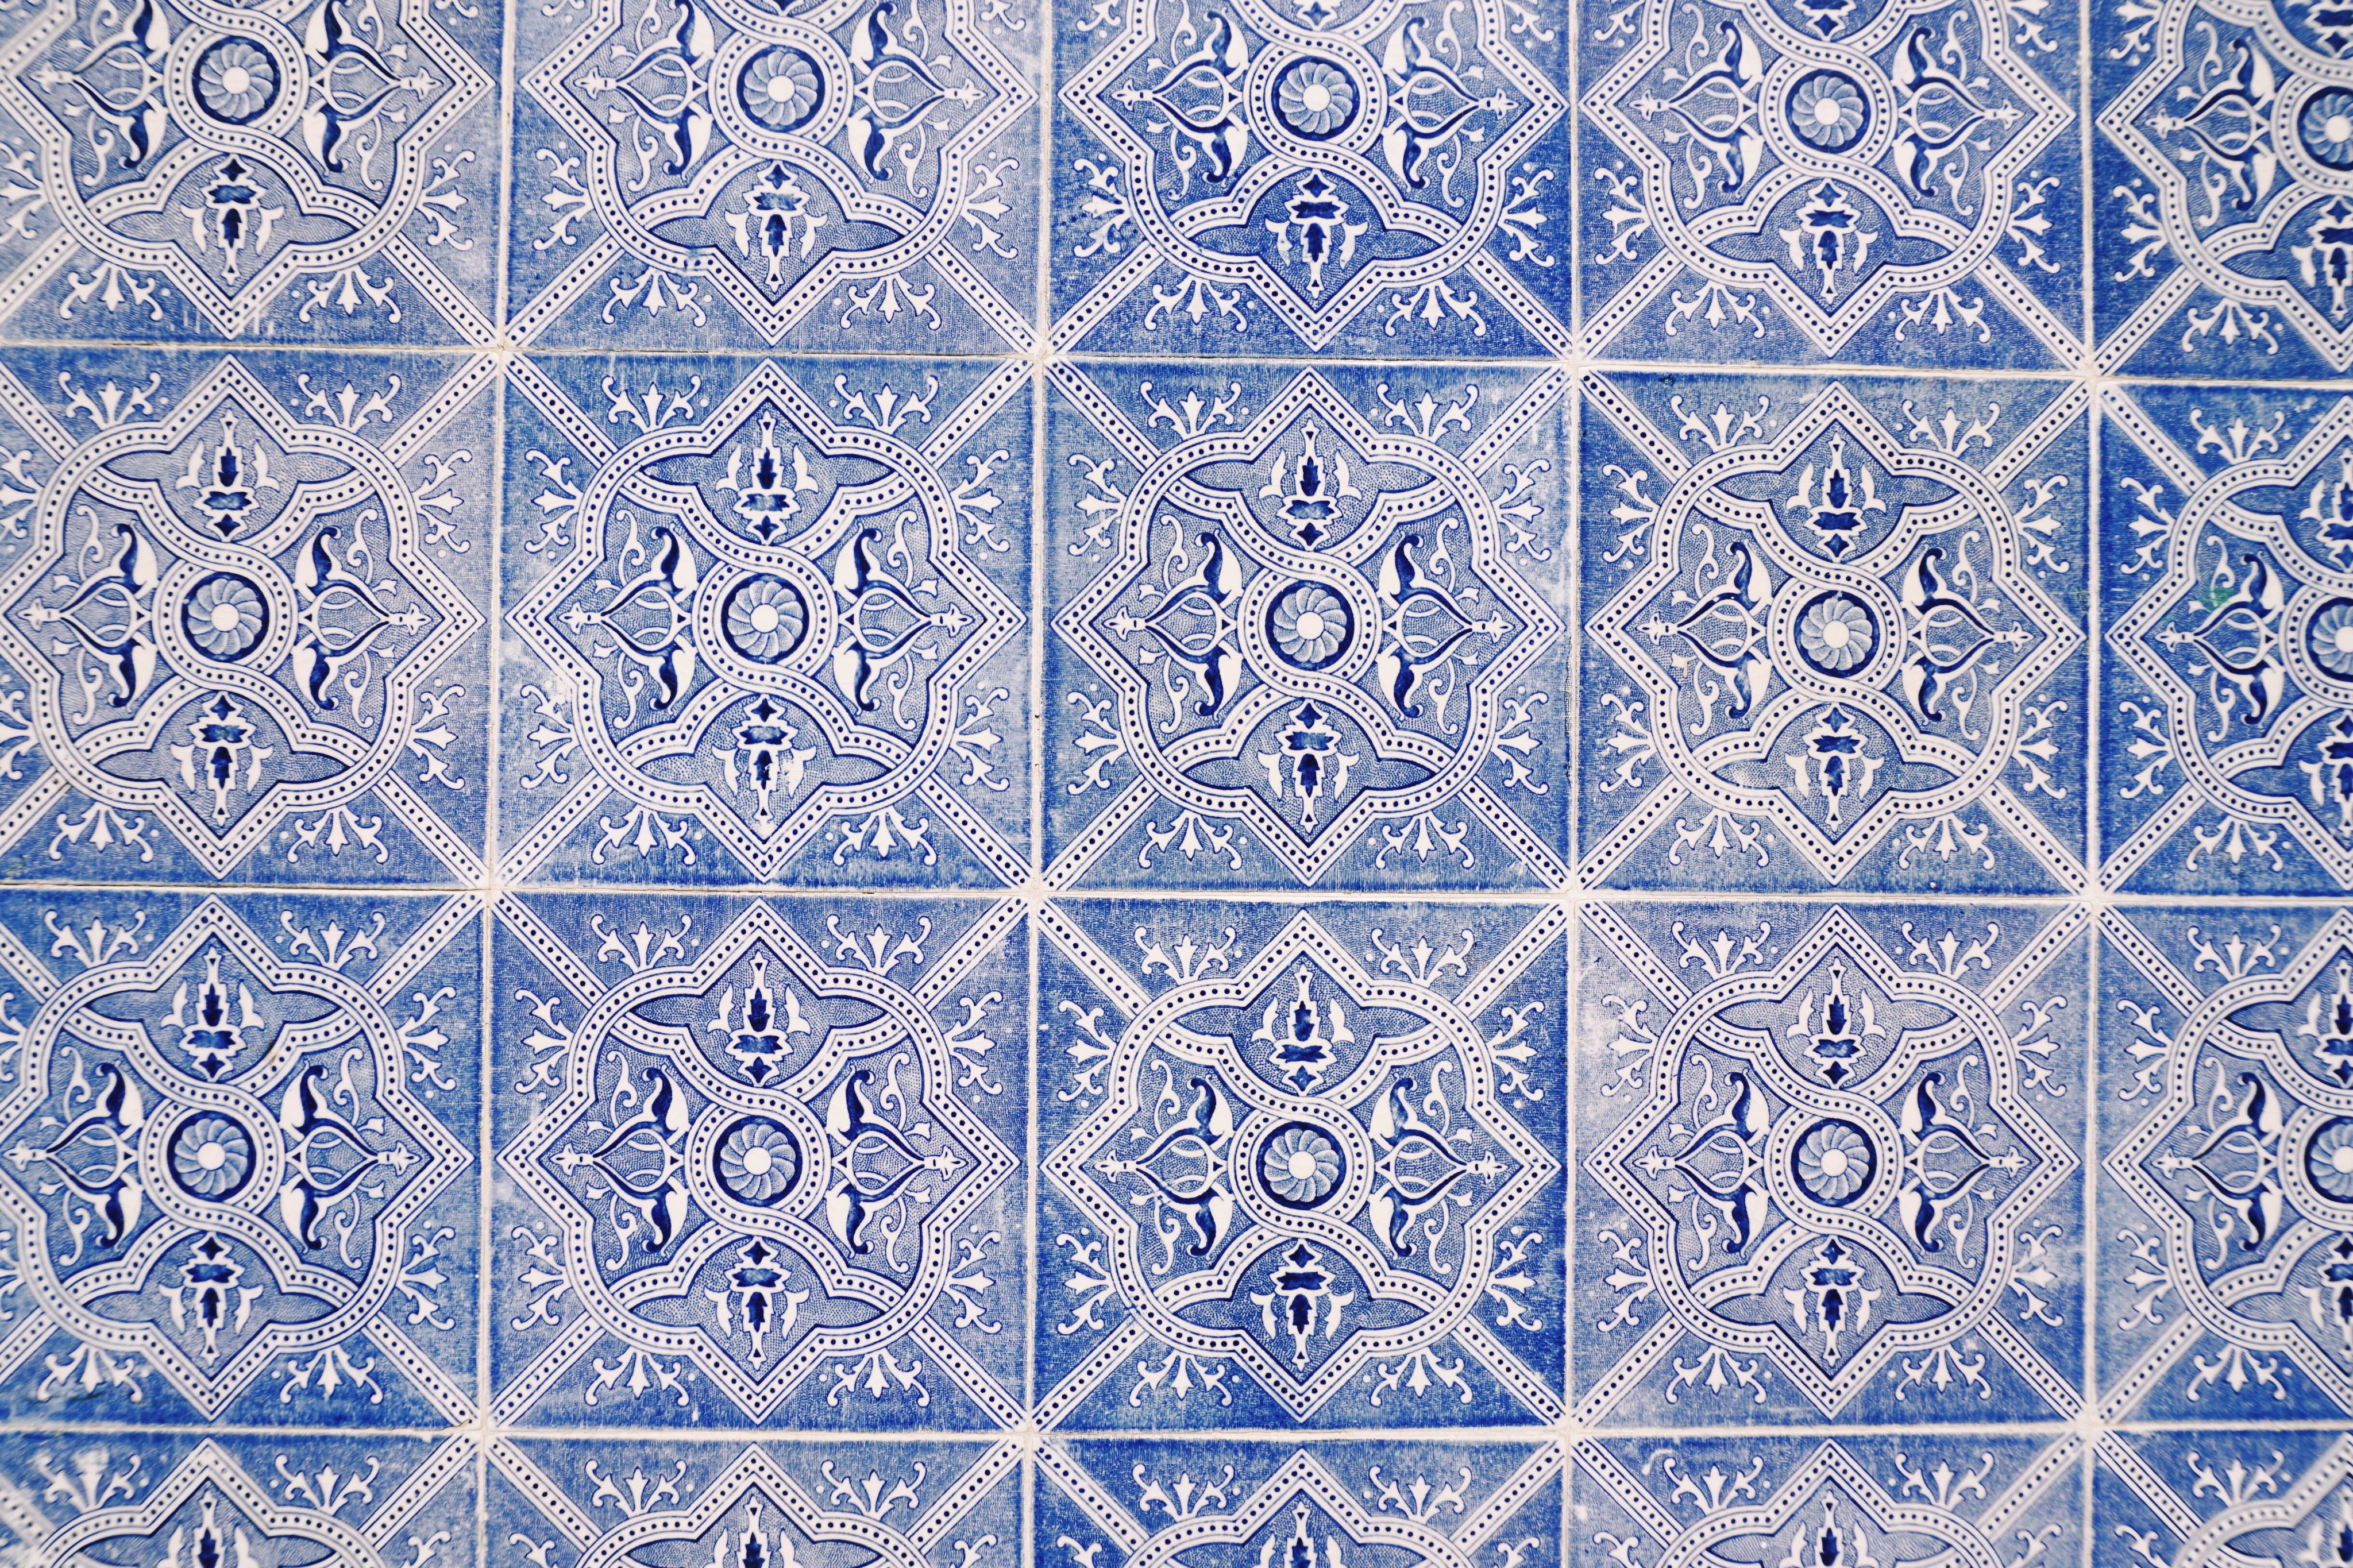 Traditional Portuguese tiles. Azulejos in the Algarve